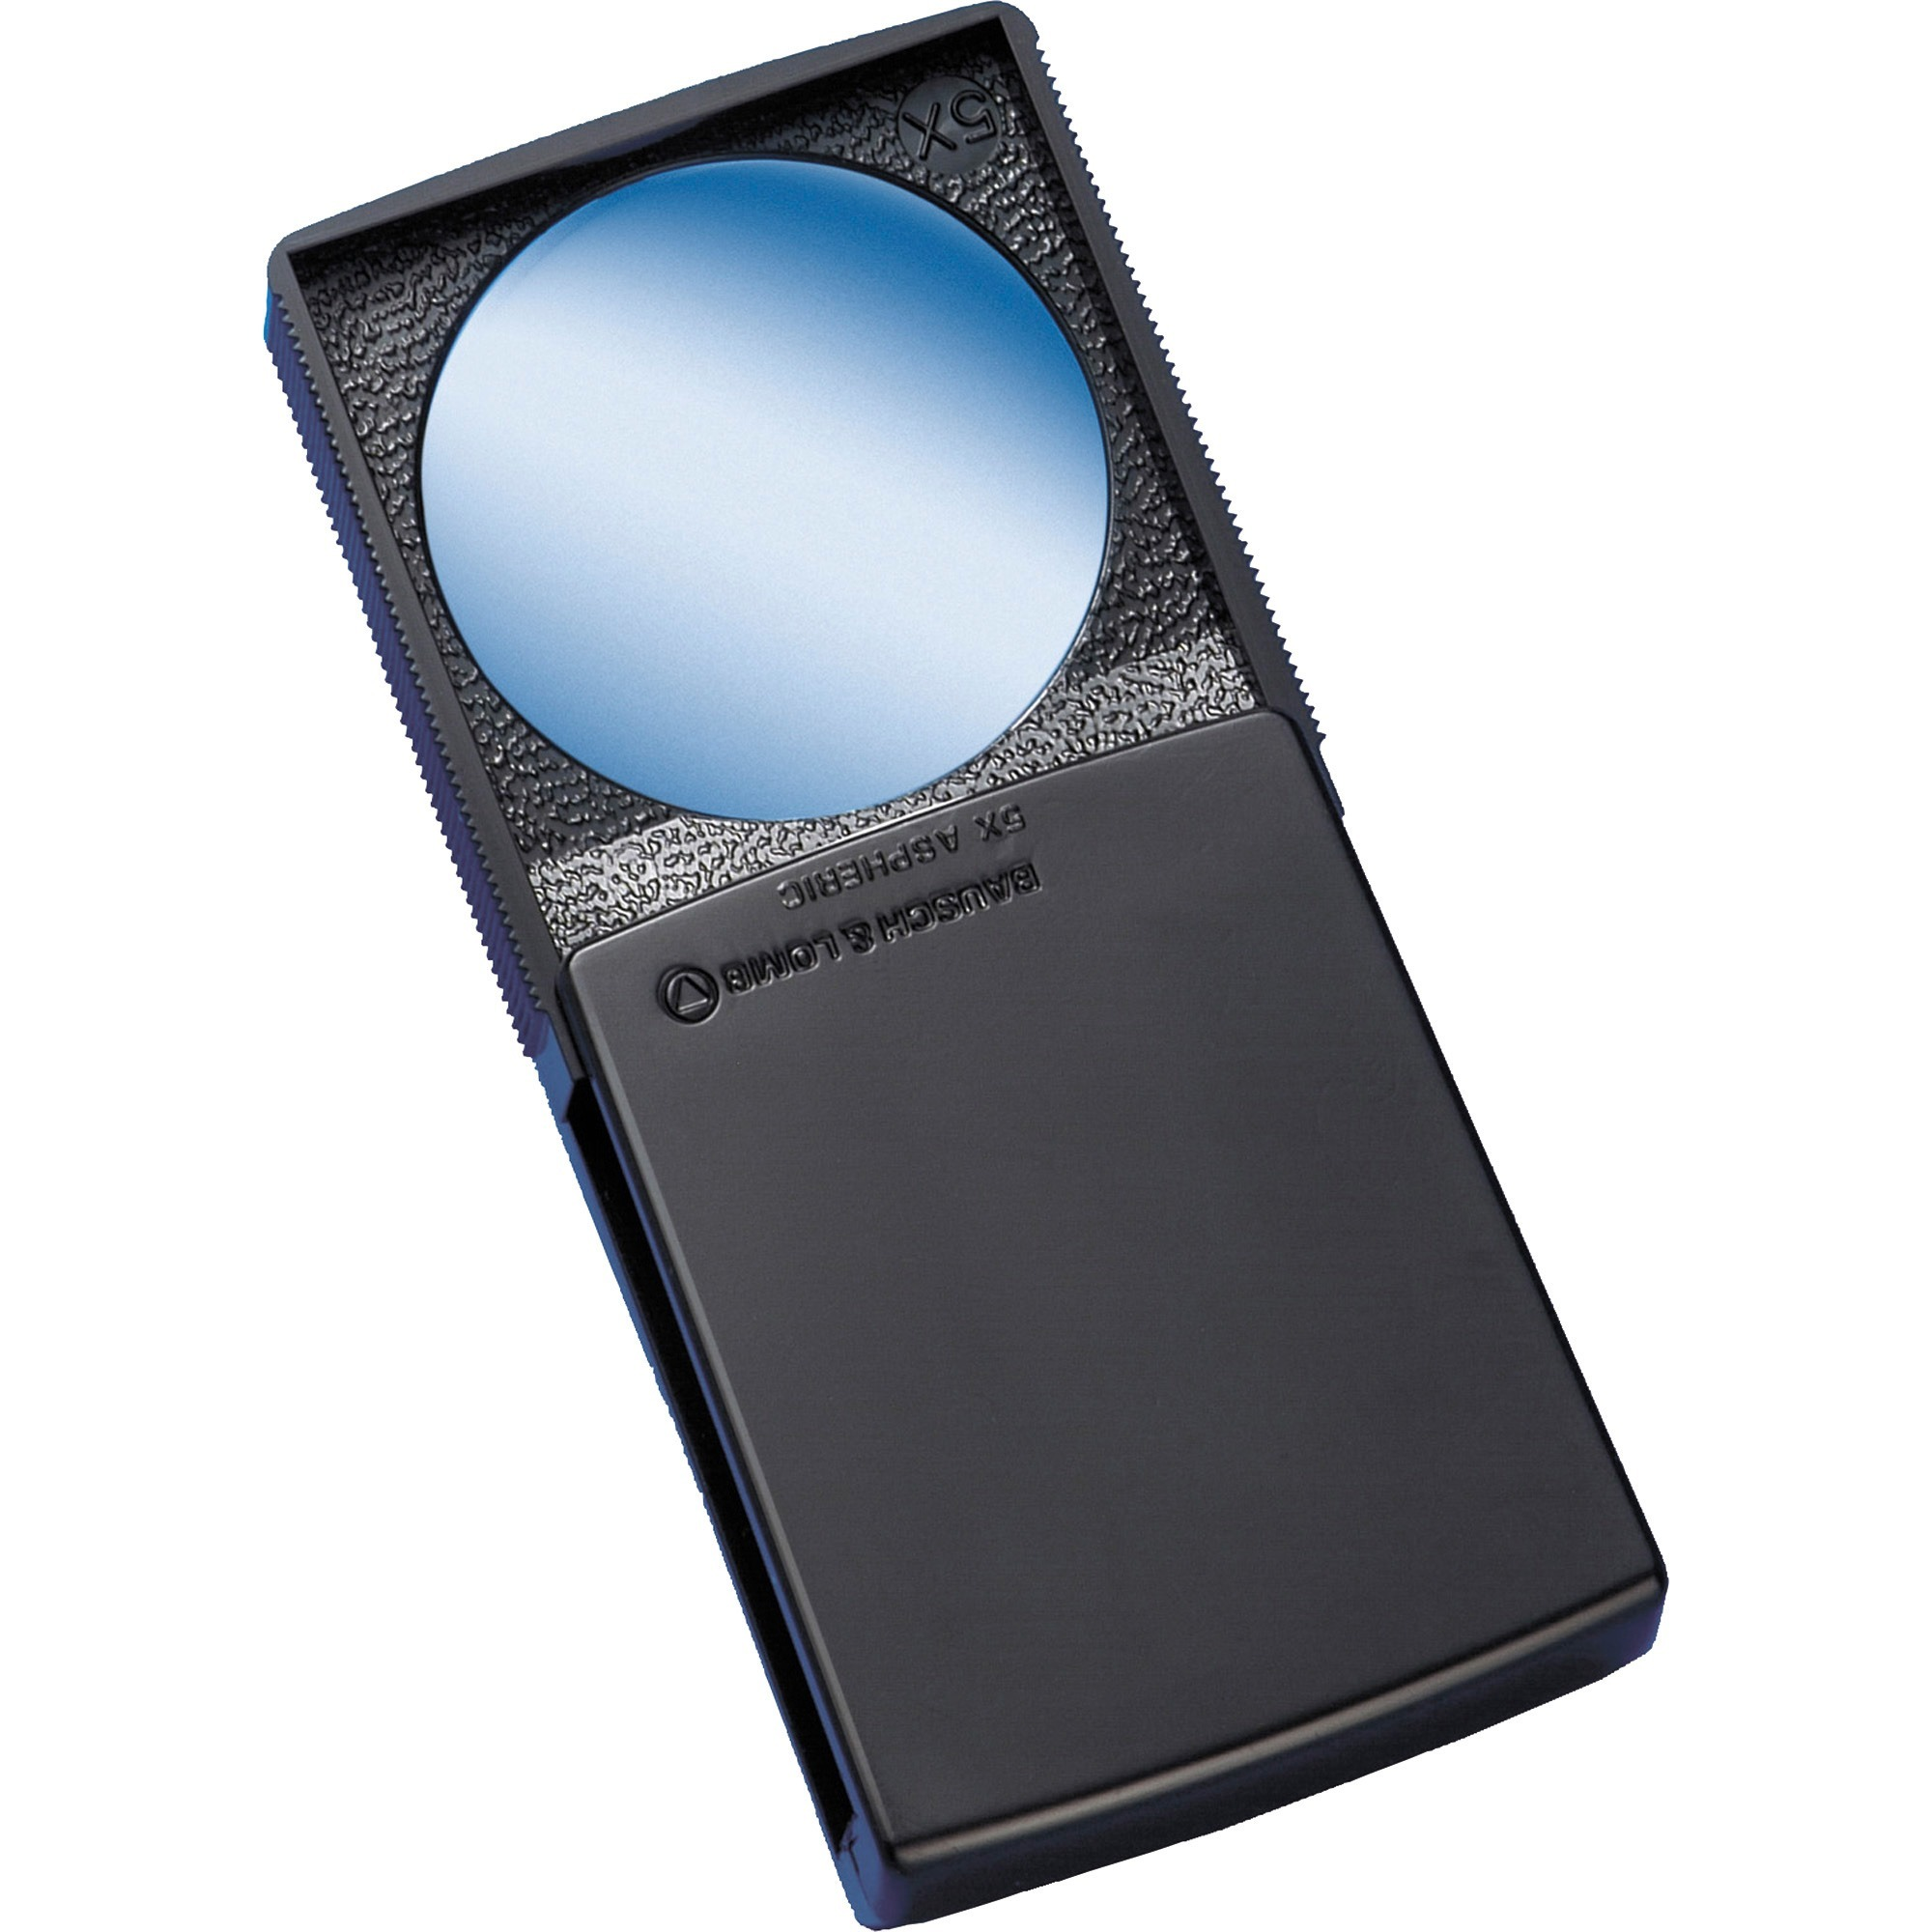 Bausch and Lomb Packette High-Power Magnifier, Black/Clear